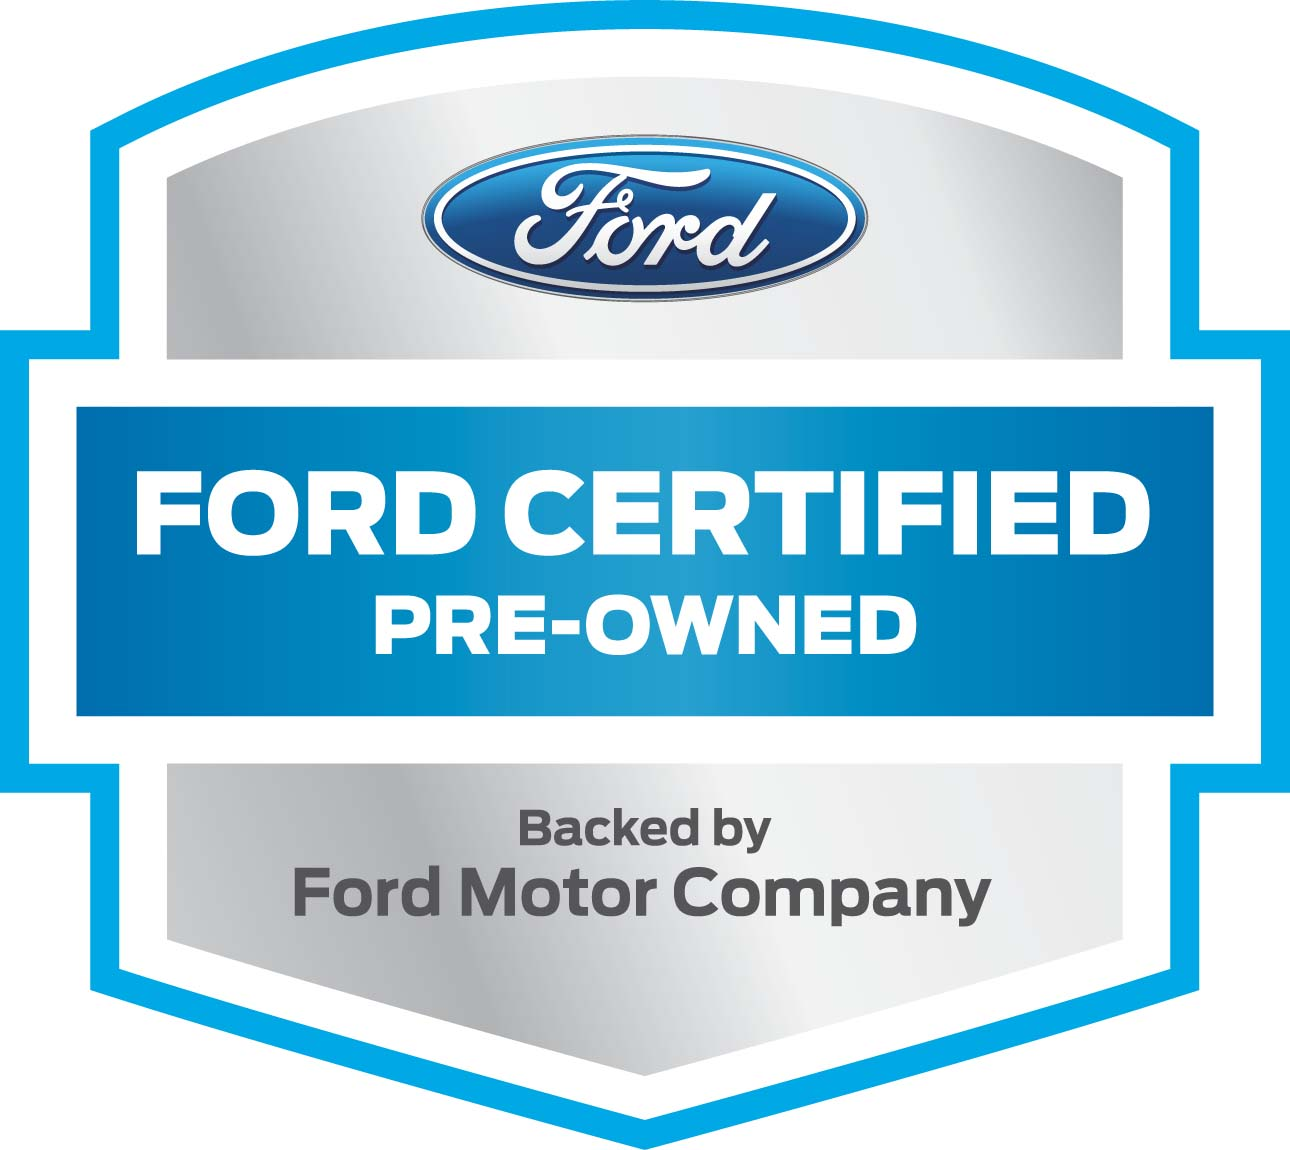 Velde Ford Pekin >> Velde Ford Dealership in Pekin, IL - New and Used Cars